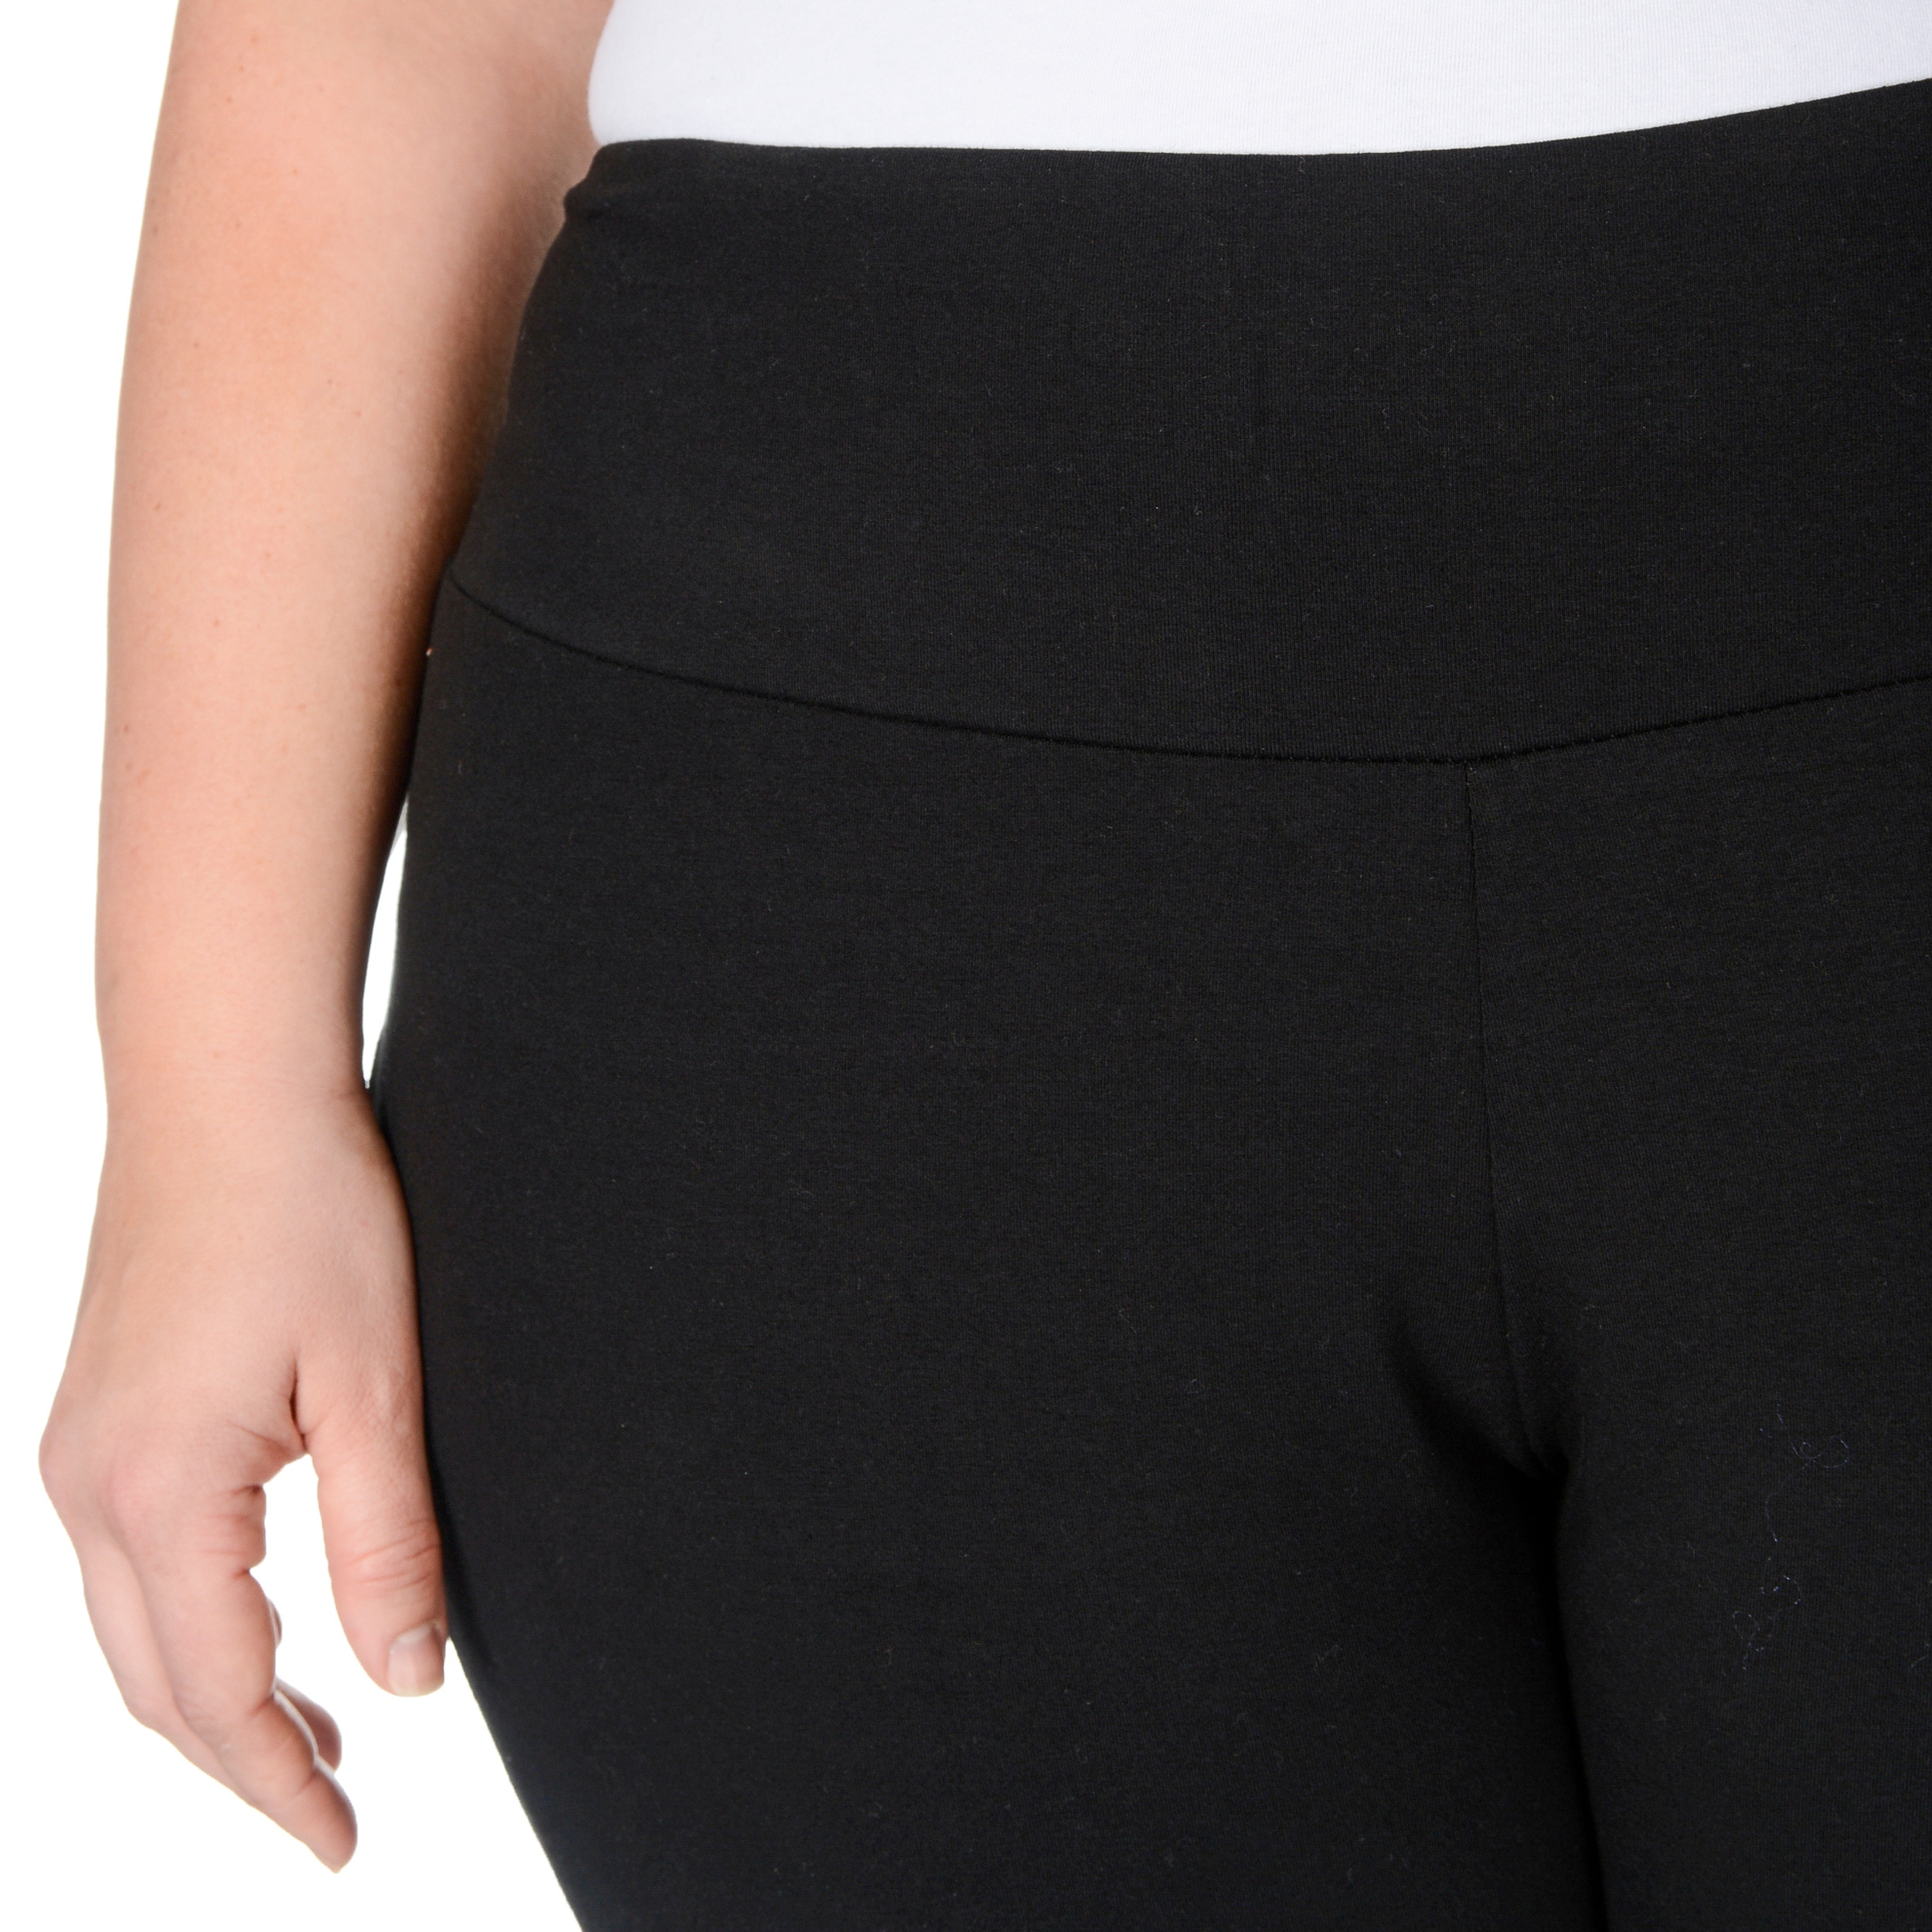 41441ba95908a Shop Teez-Her Women's Plus Size 'The Skinny' Tummy Control Pants - Free  Shipping On Orders Over $45 - Overstock - 9009502